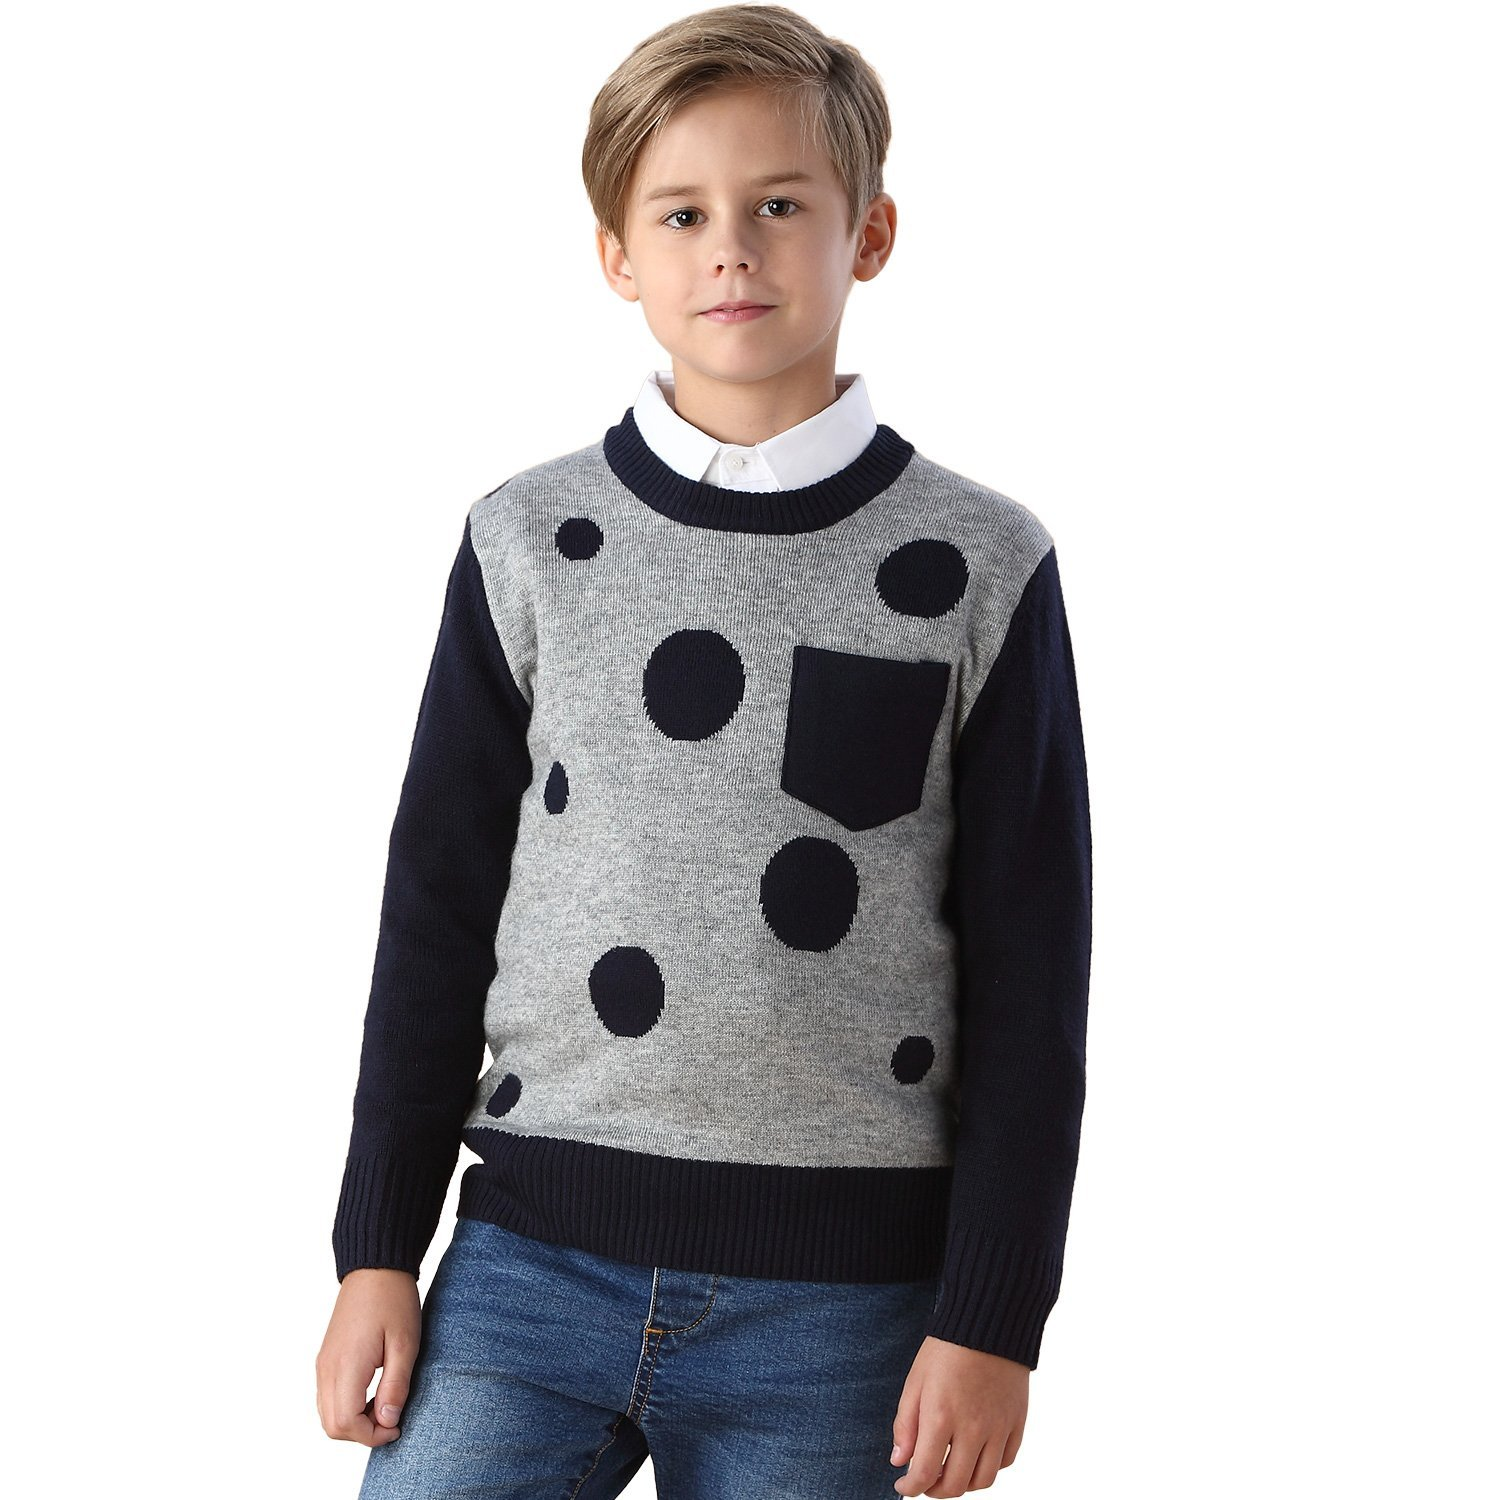 Leo& Lily Boys' Wool Blends Casual Dobby Sweater Pullover Navy LLB1258-NAVYDOT-10-$P